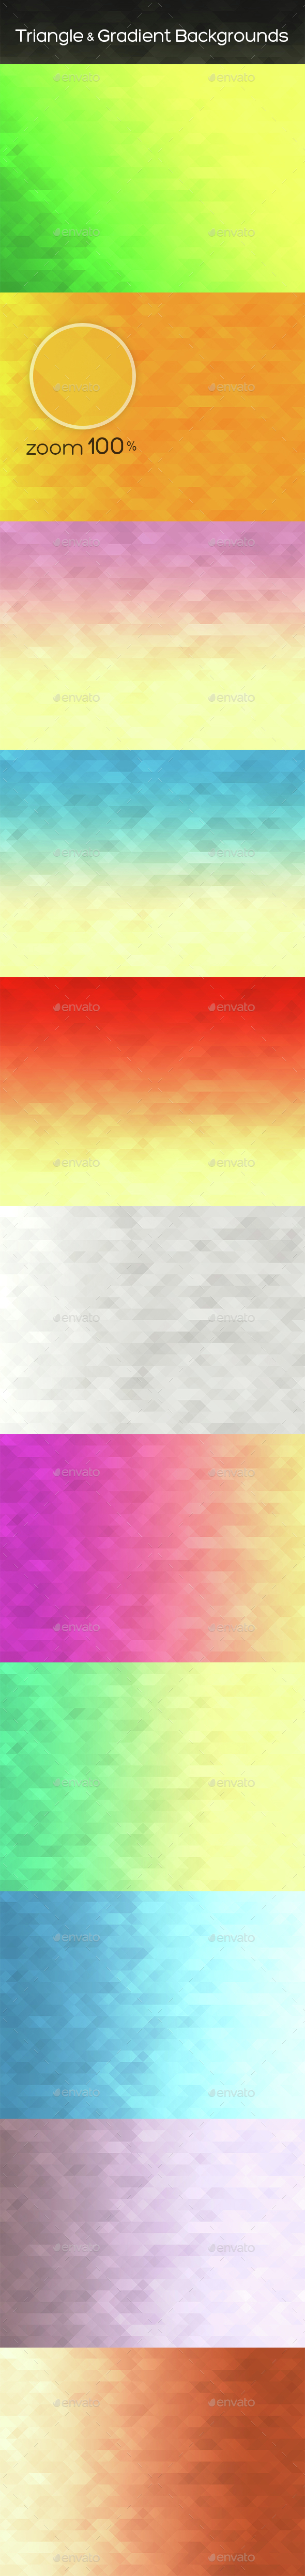 Triangle & Gradient Backgrounds - Abstract Backgrounds